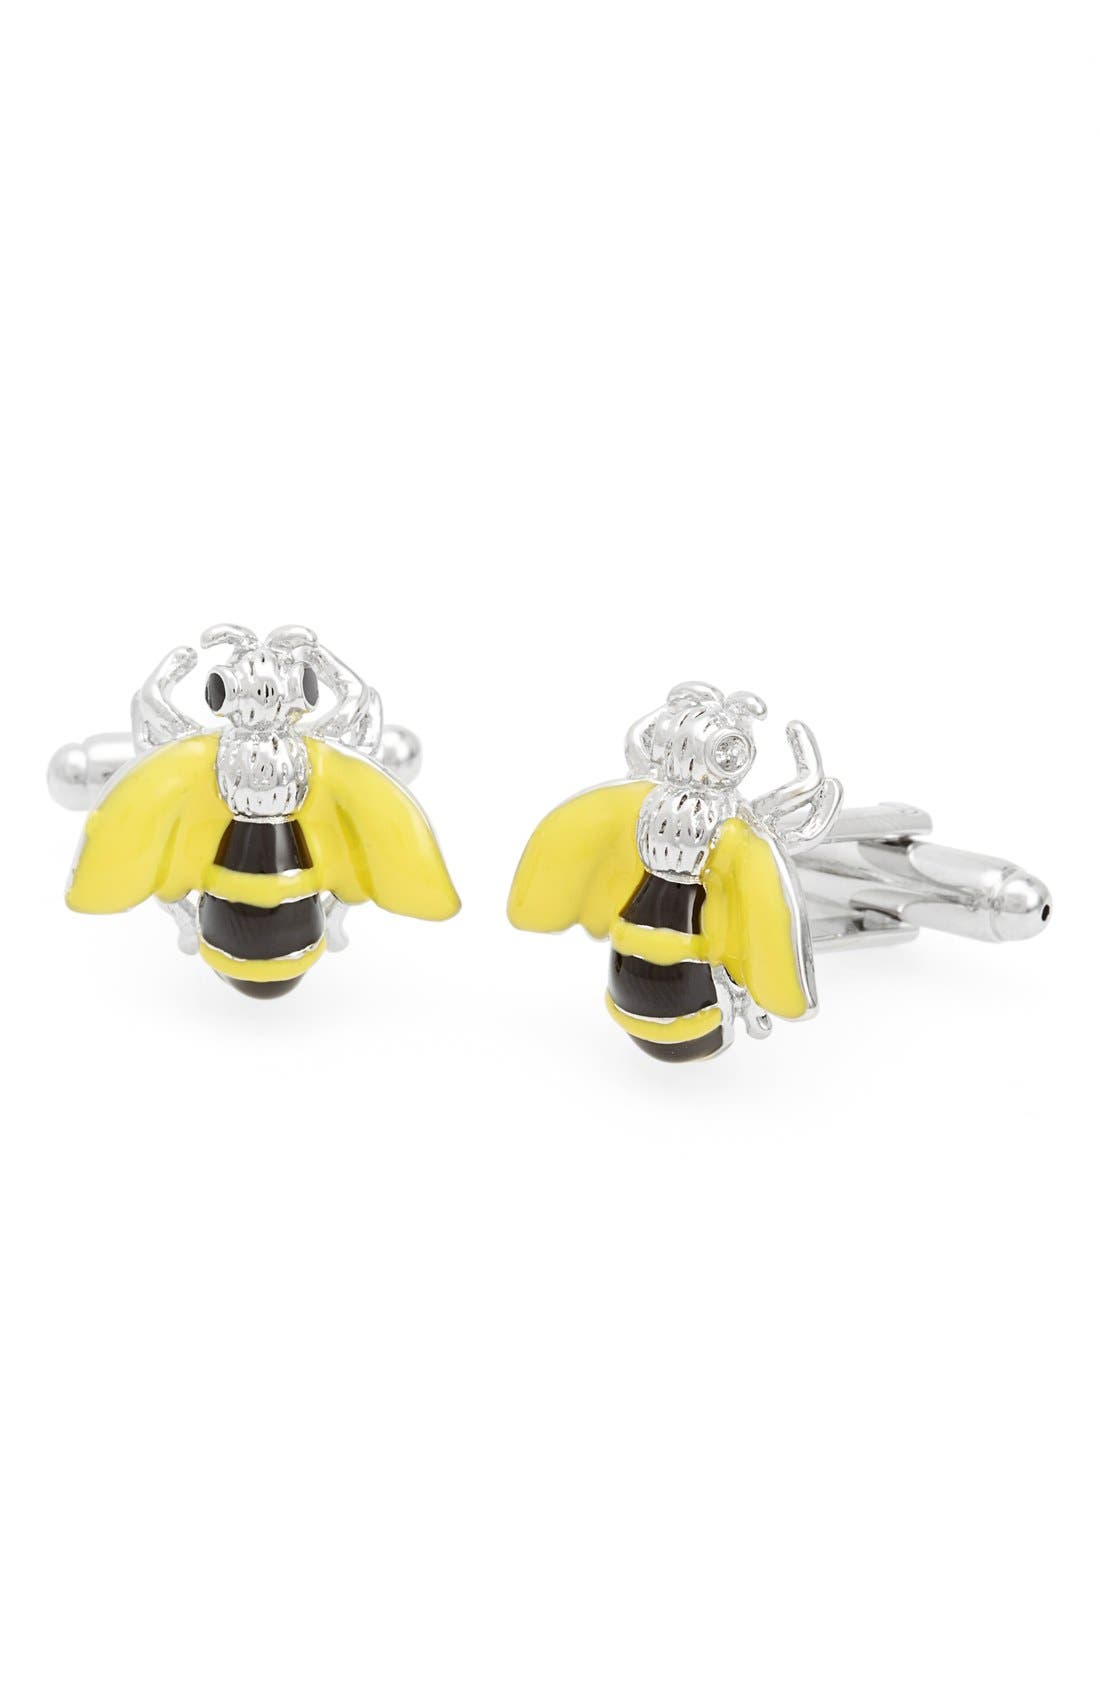 'Bee' Cuff Links,                         Main,                         color, Silver/ Black/ Yellow Wings